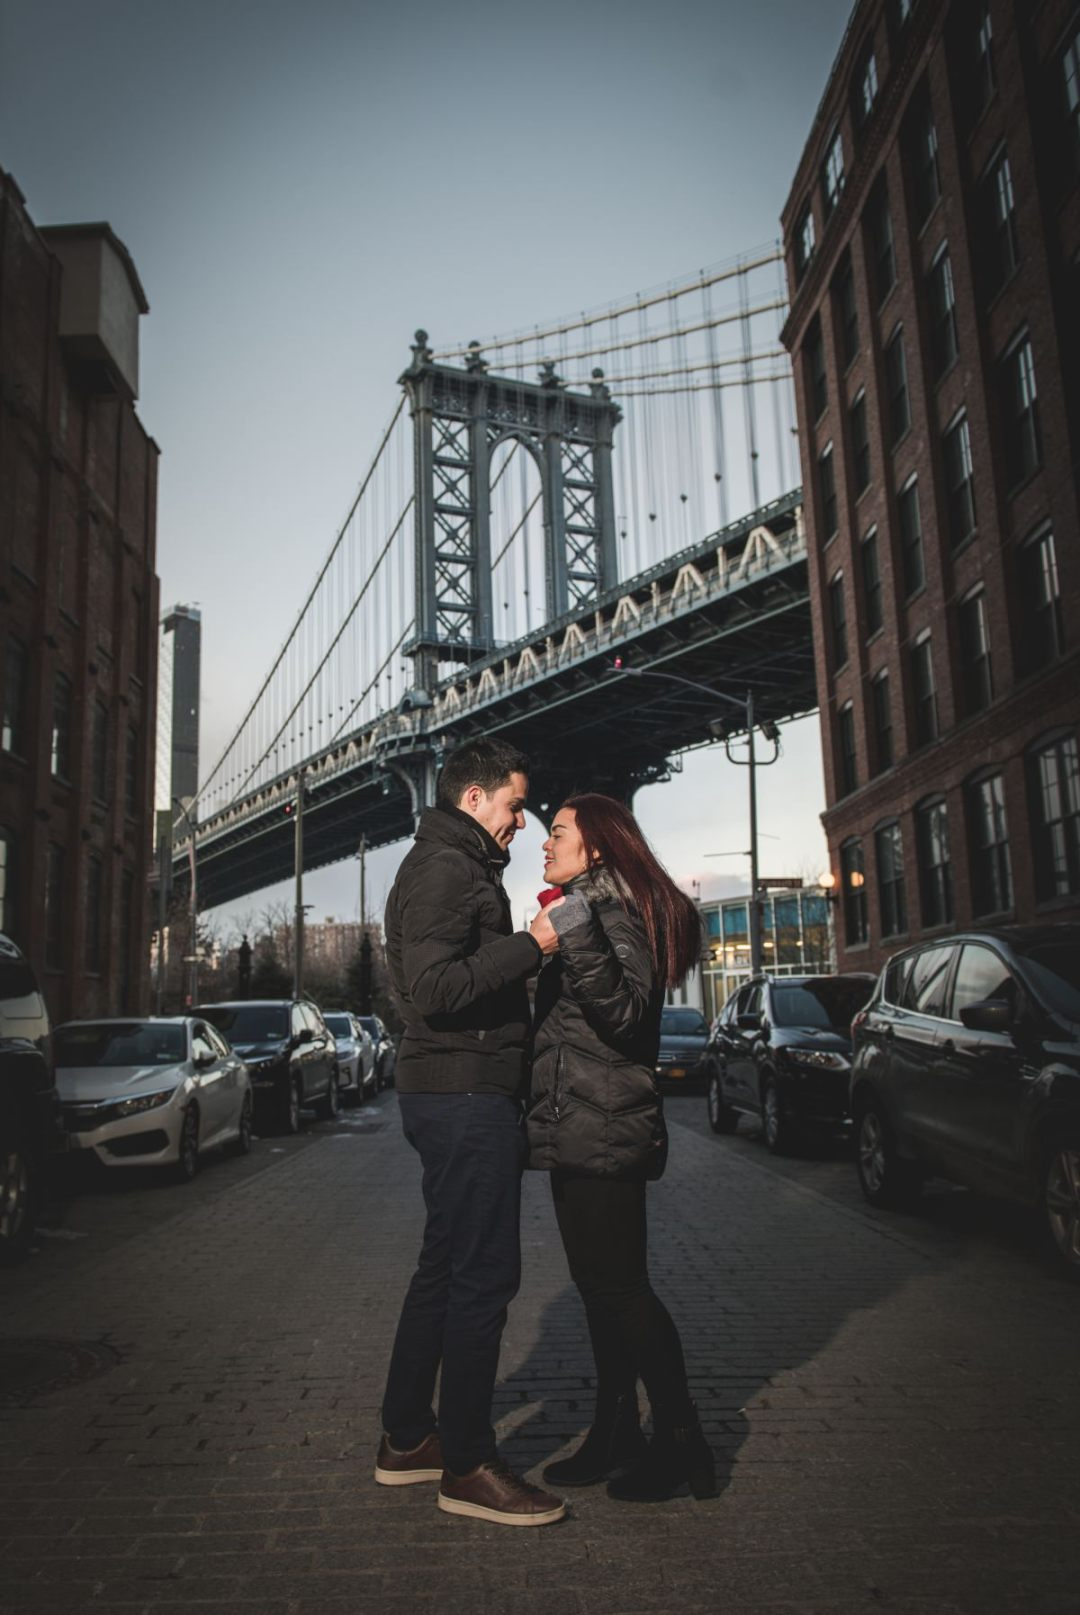 giancarlo blog 13 - Brooklyn Marriage Proposal and Engagement Photography